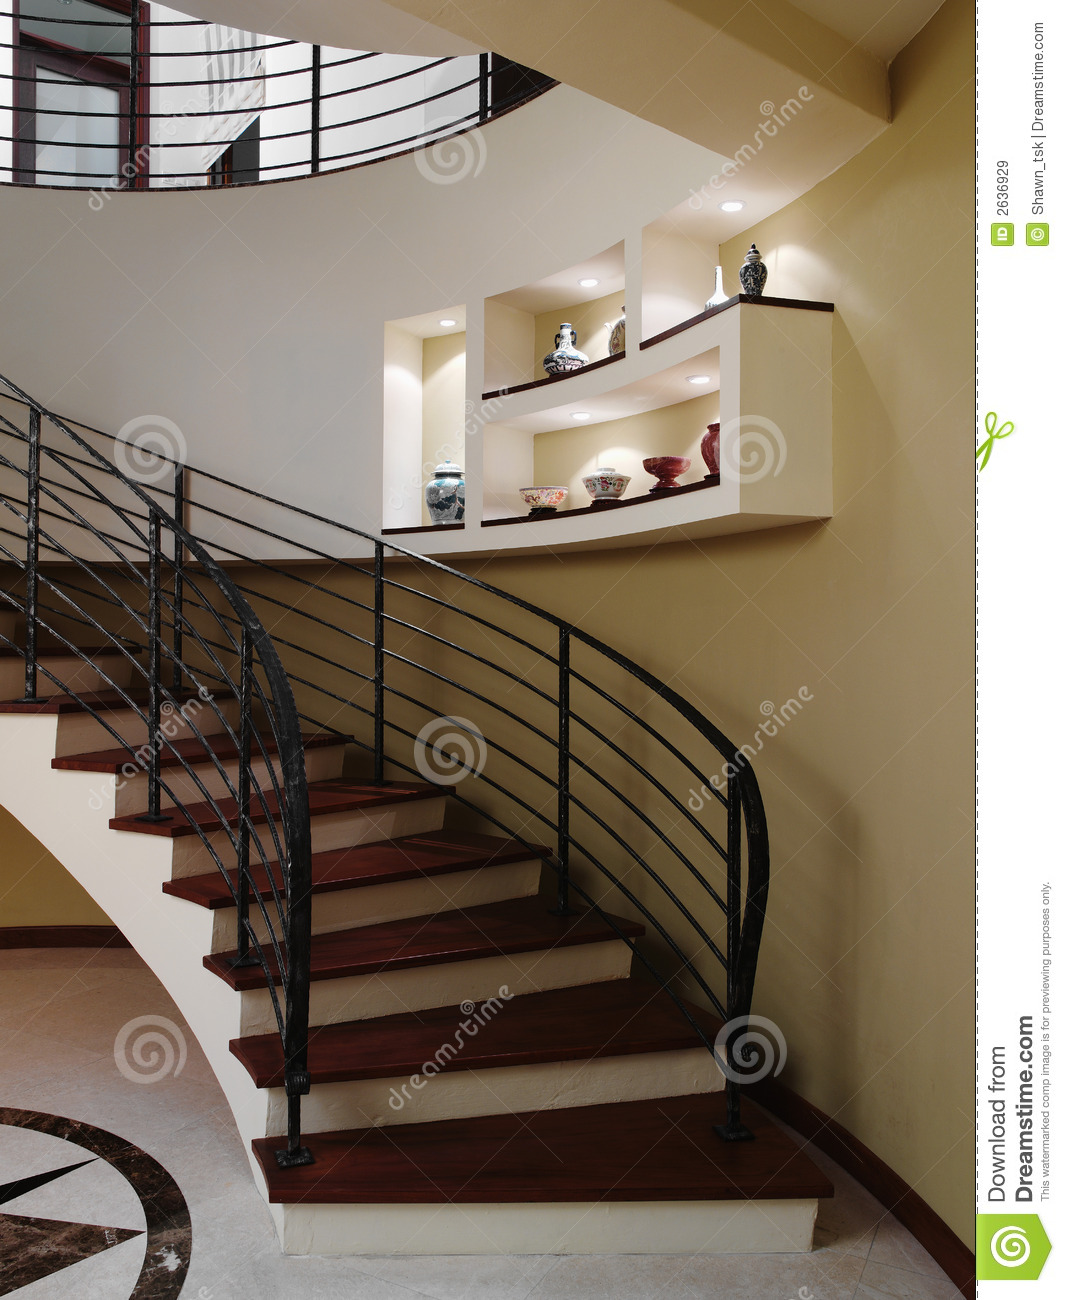 Interior design stairs stock image image of ceiling for Interior decoration under staircase